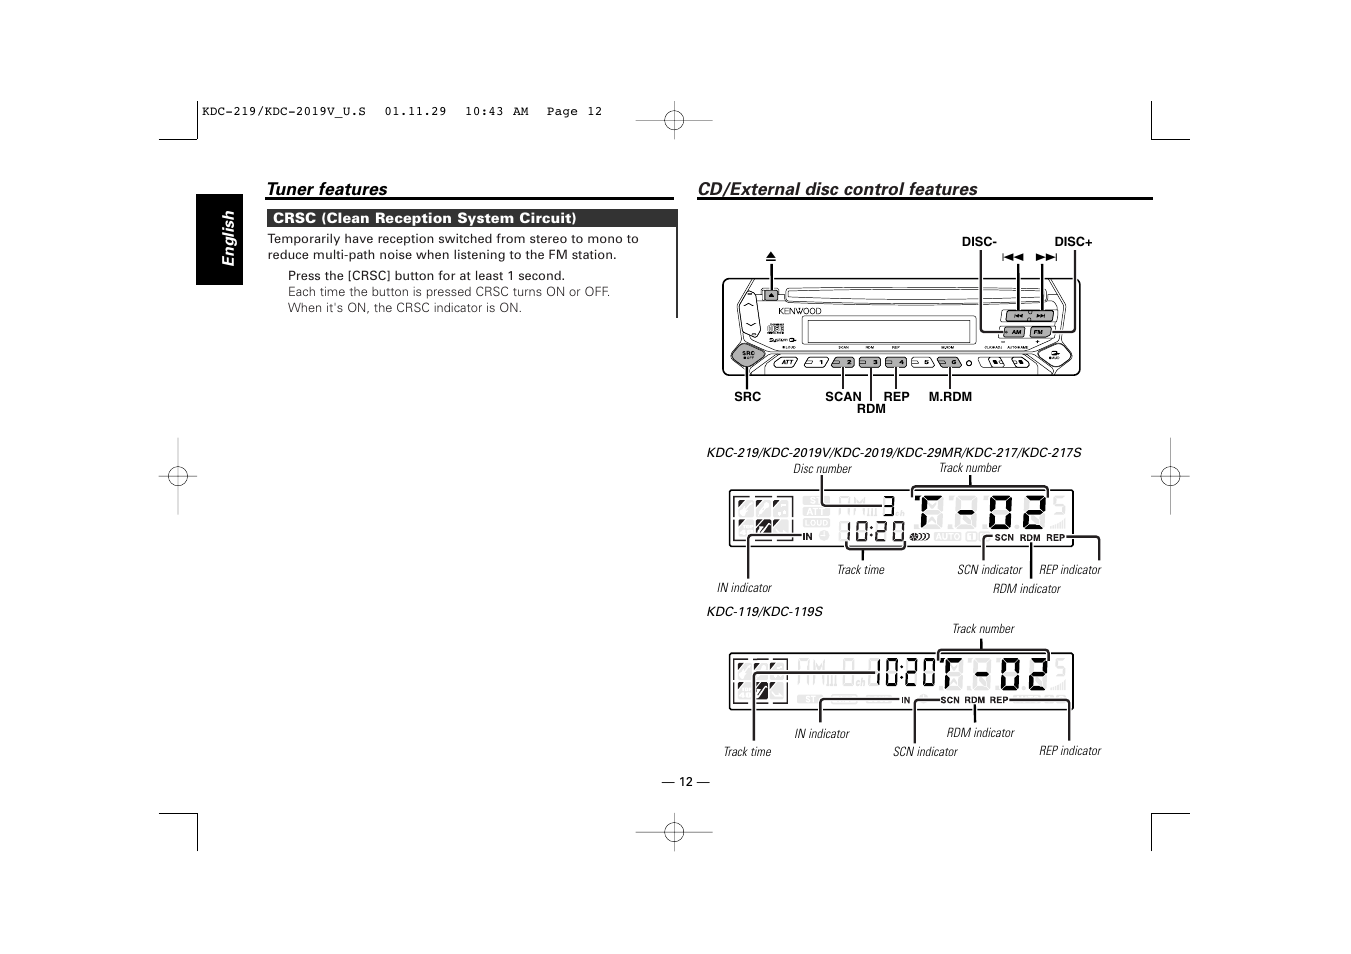 Kenwood Kdc217s Wiring Diagram And Schematics Kdc 322 Cd External Disc Control Features 119 User Manual Page 12 25